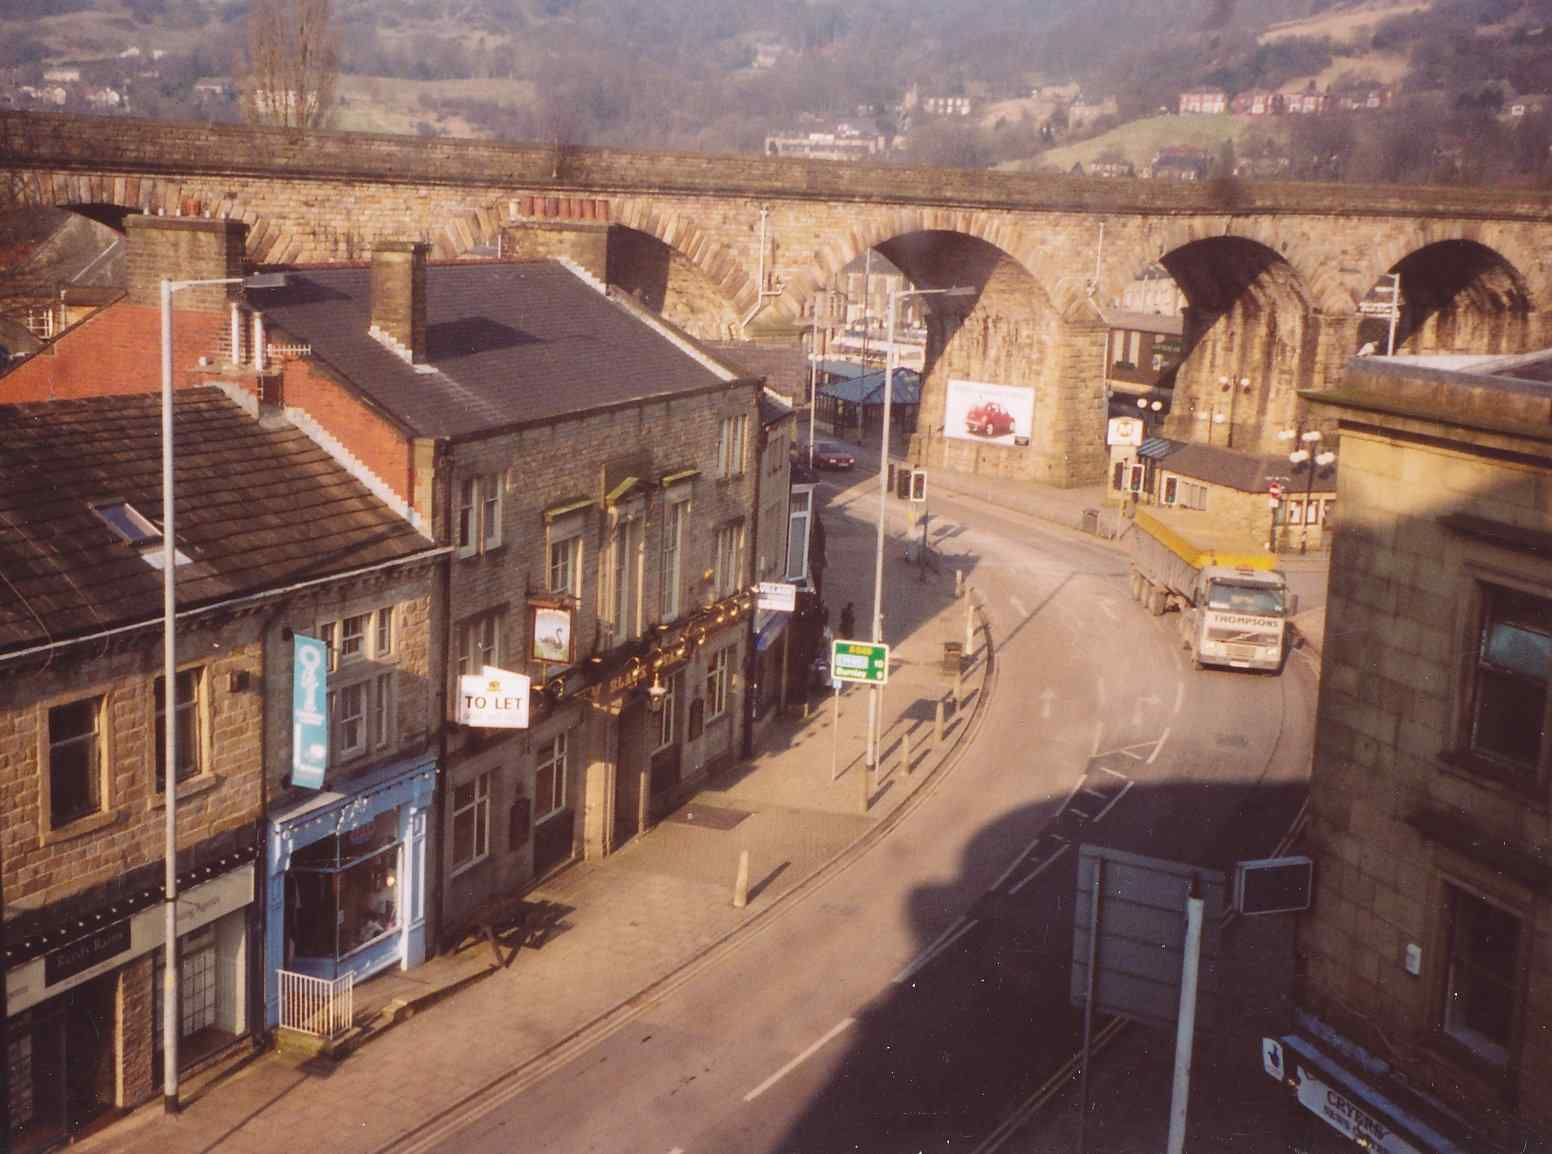 Photo of Burnley Road shops and the 'Black Swan' pub taken from the attic of the Town Hall c. 2008 showing railway viaduct.